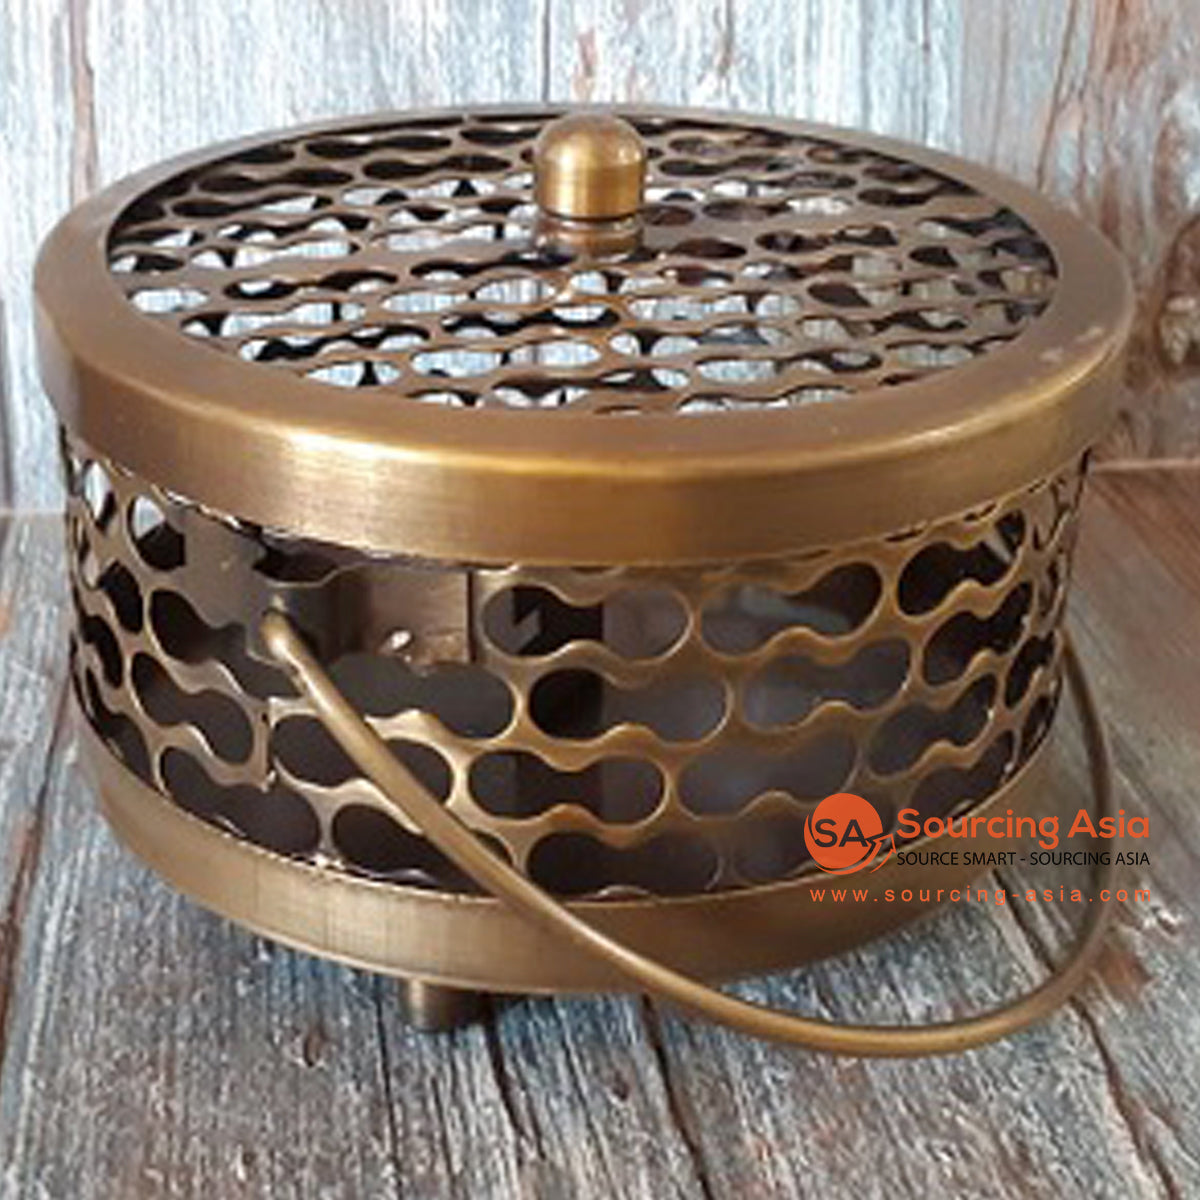 GB102 BRONZE MOSQUITO COIL HOLDER